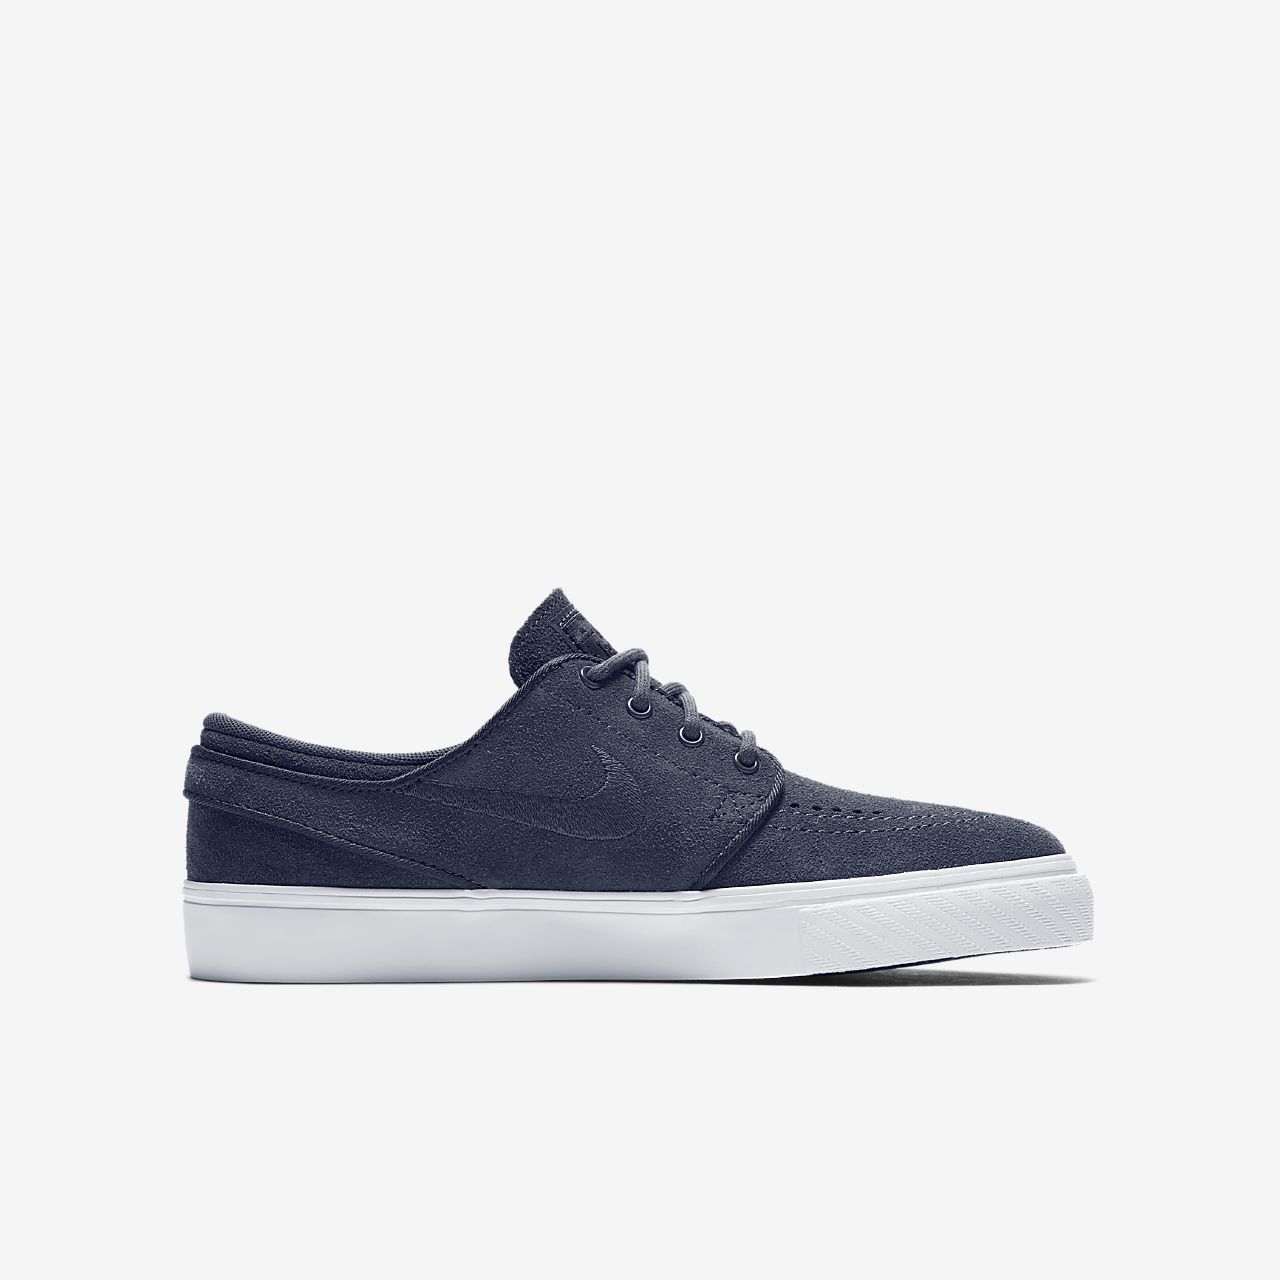 ... Nike Zoom Stefan Janoski Older Kids' Skateboarding Shoe